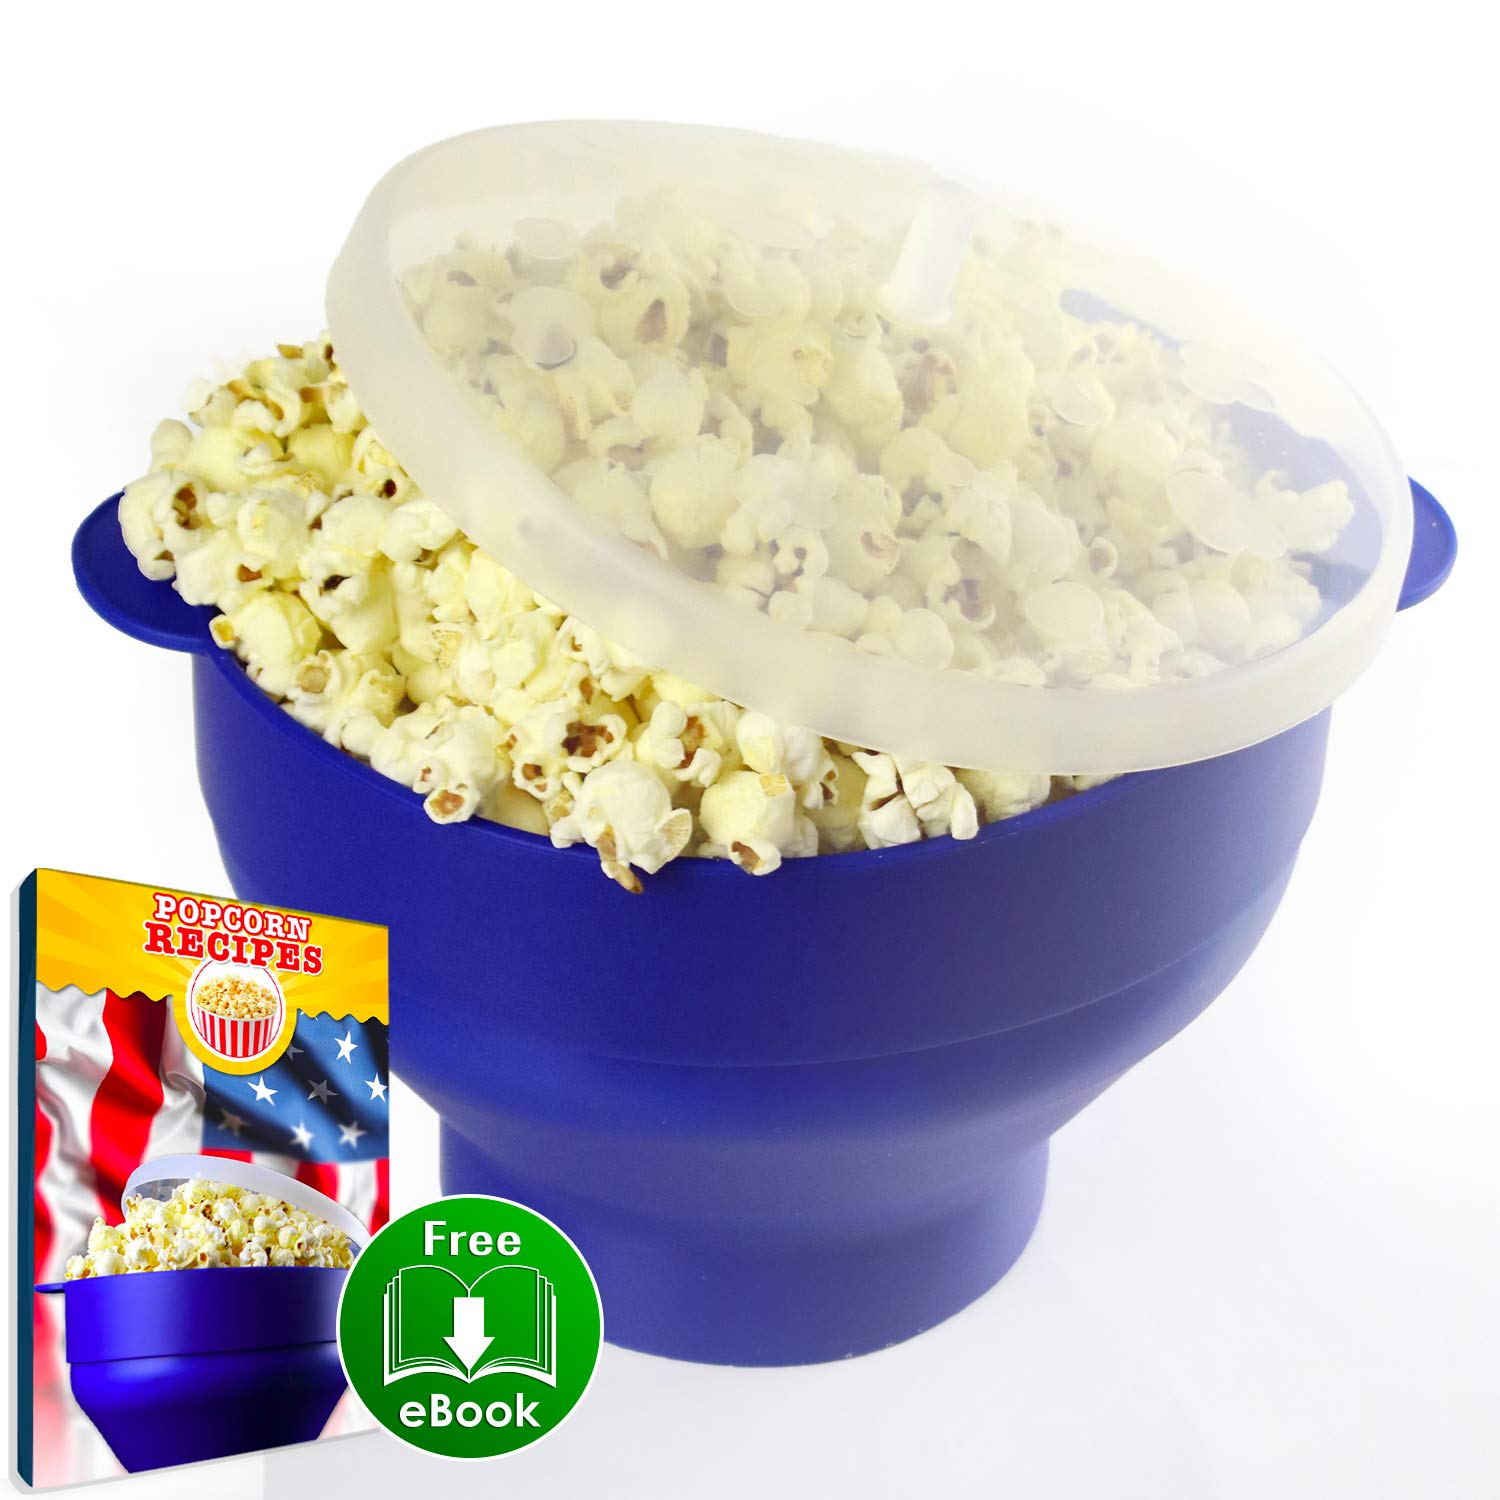 Domisia - Microwave Popcorn Popper - Collapsible Microwave Popcorn Maker for Home - BPA Free Popcorn Maker - Blue - Collapsible Bowl with Handles and Lid - Healthy Choice - Recipe E-Book Included by Domisia